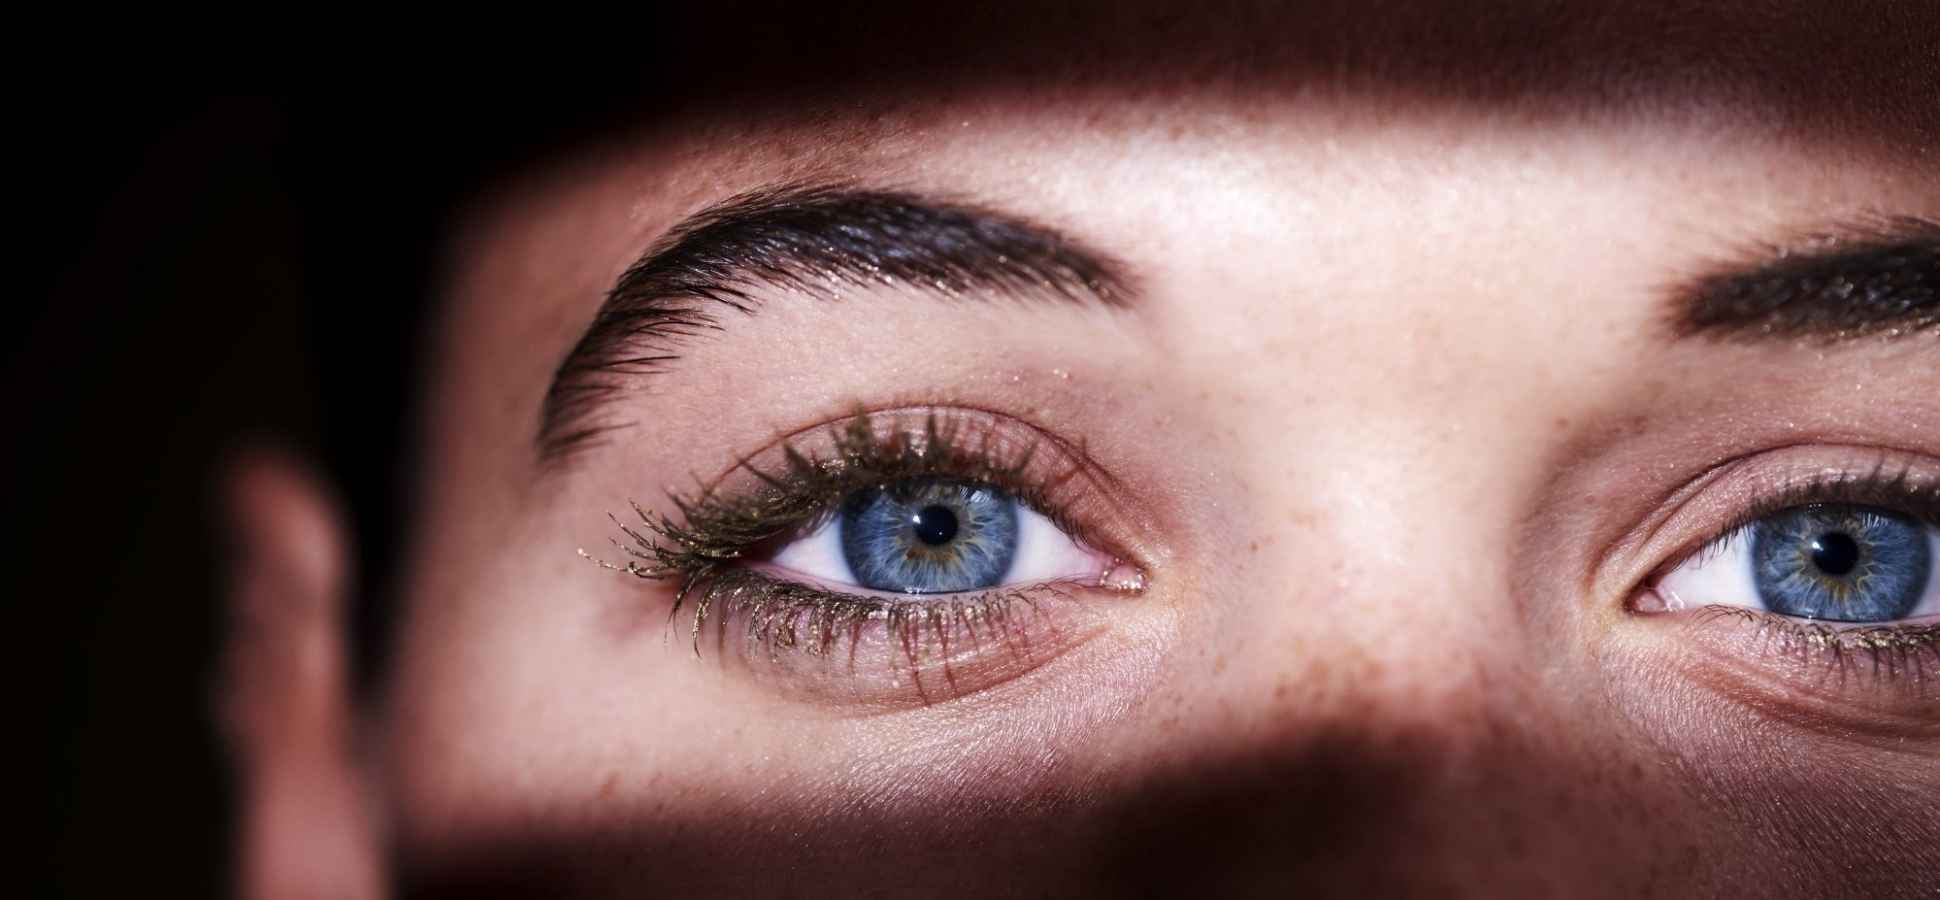 How Open-Minded are You? Science Says This Simple Eye Test